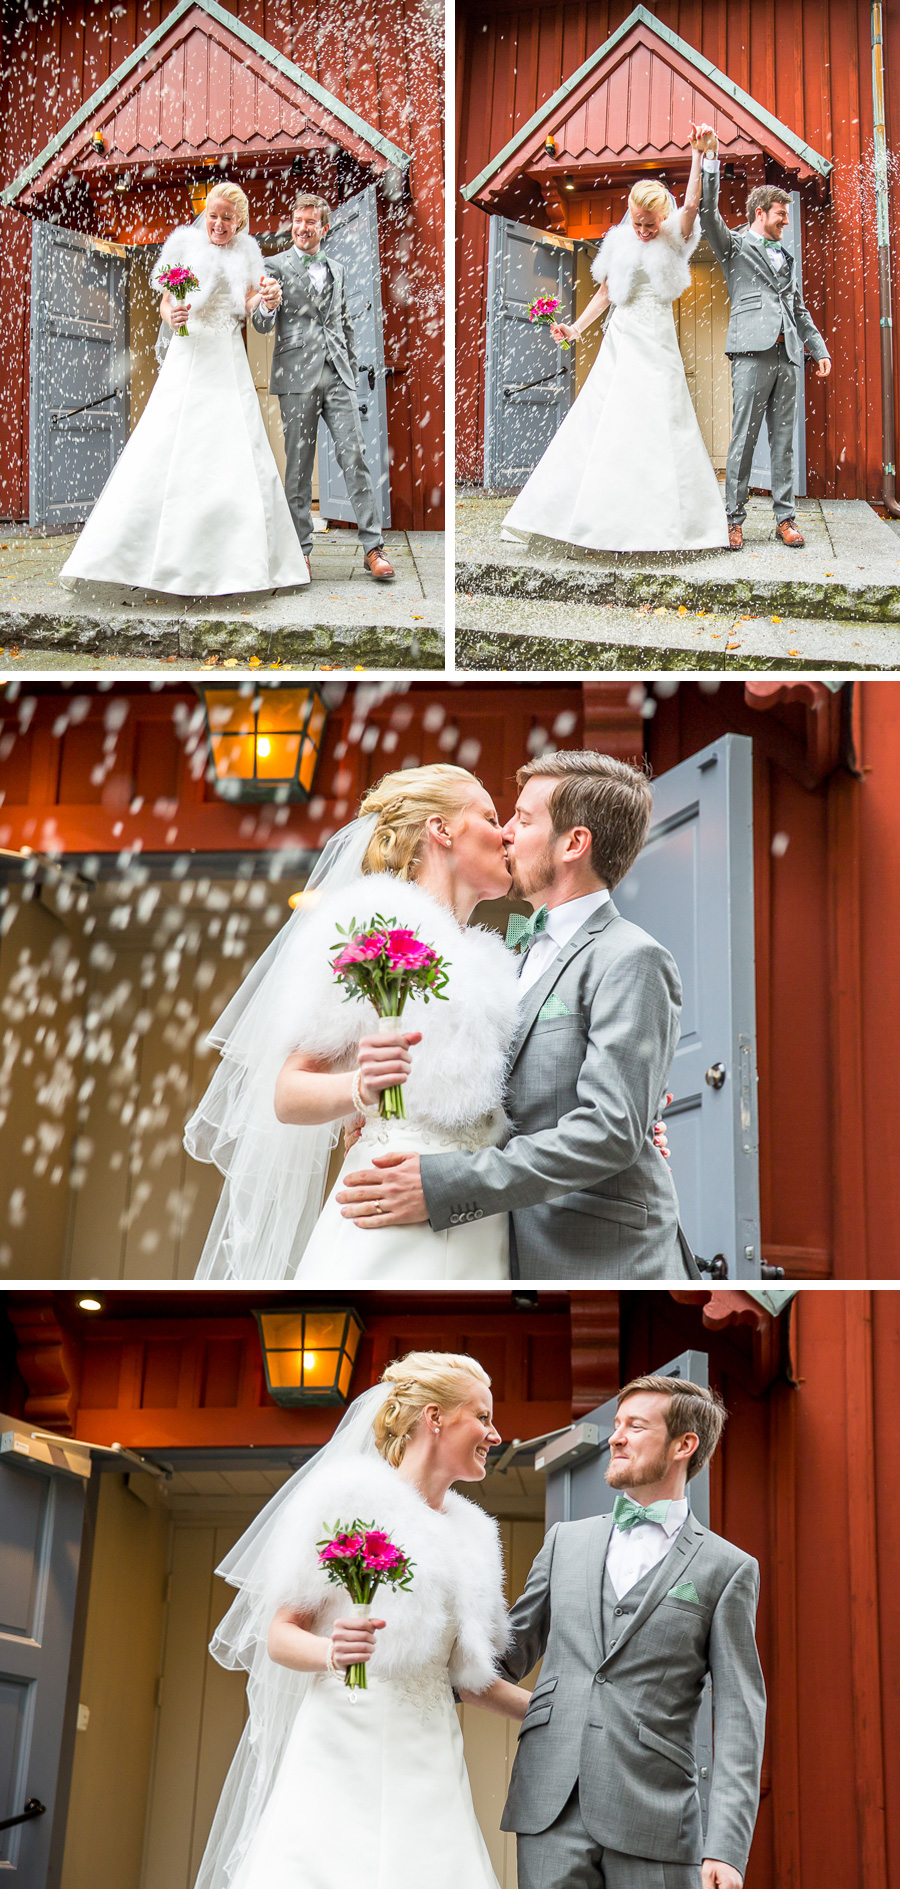 141025--NallyWedding_Foto_Rebecca-Carlgren_livefoto-nu_photo_1-93